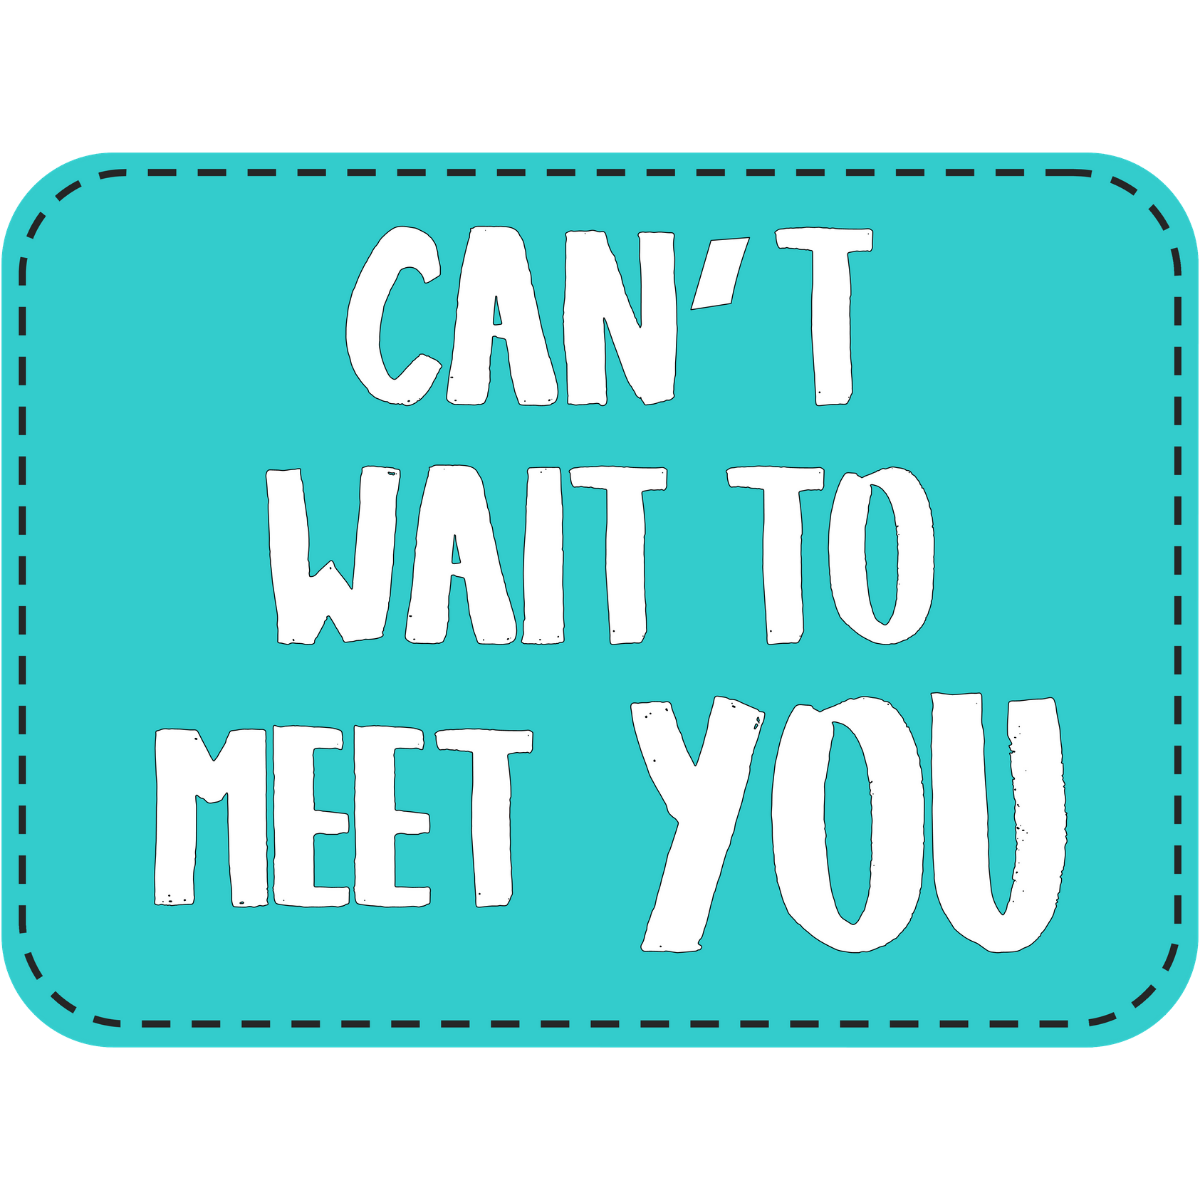 Can't Wait To Meet You - One Click Events